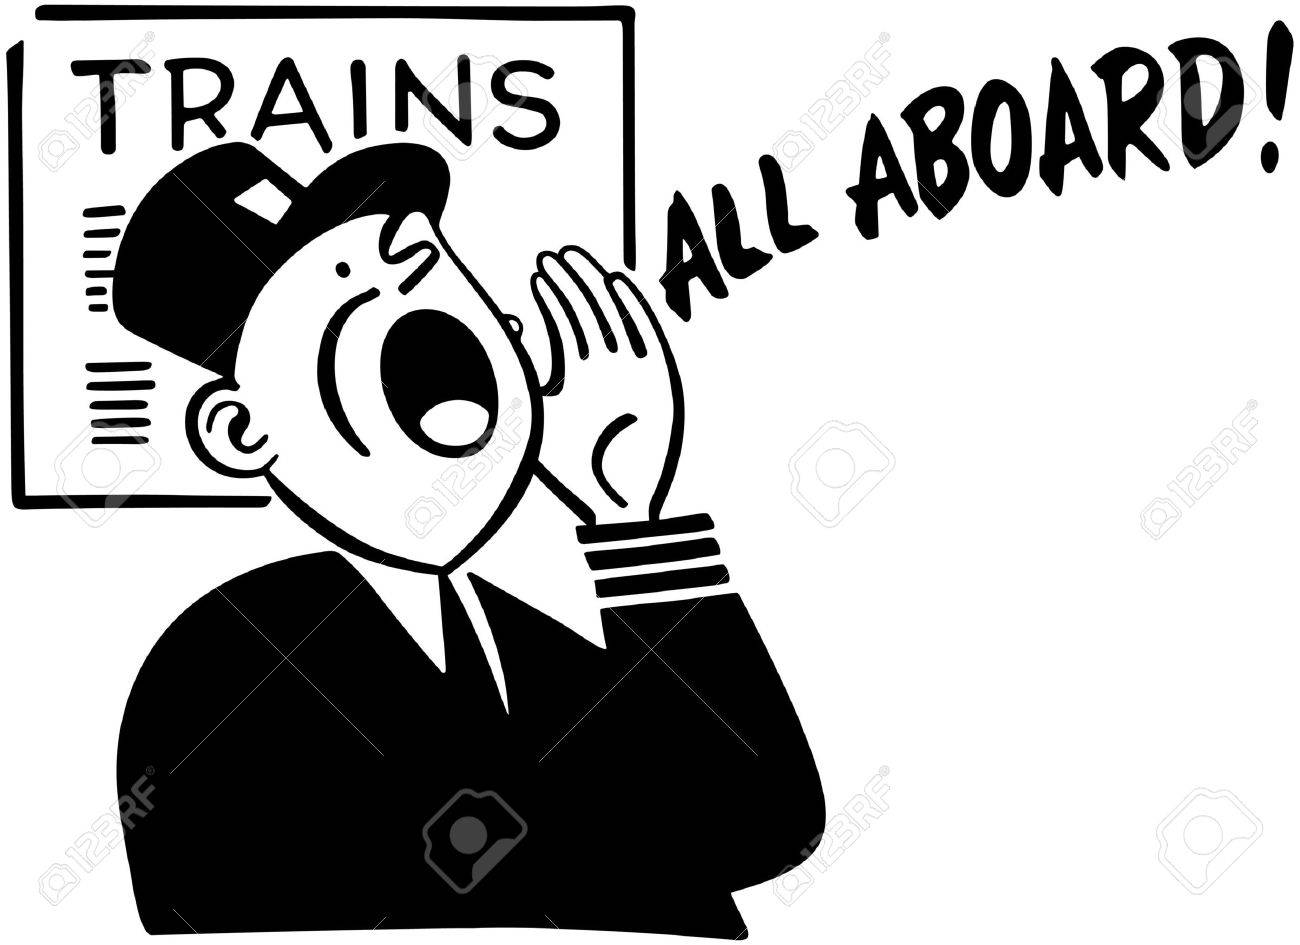 Train Conductor Cliparts Free Download Clip Art.